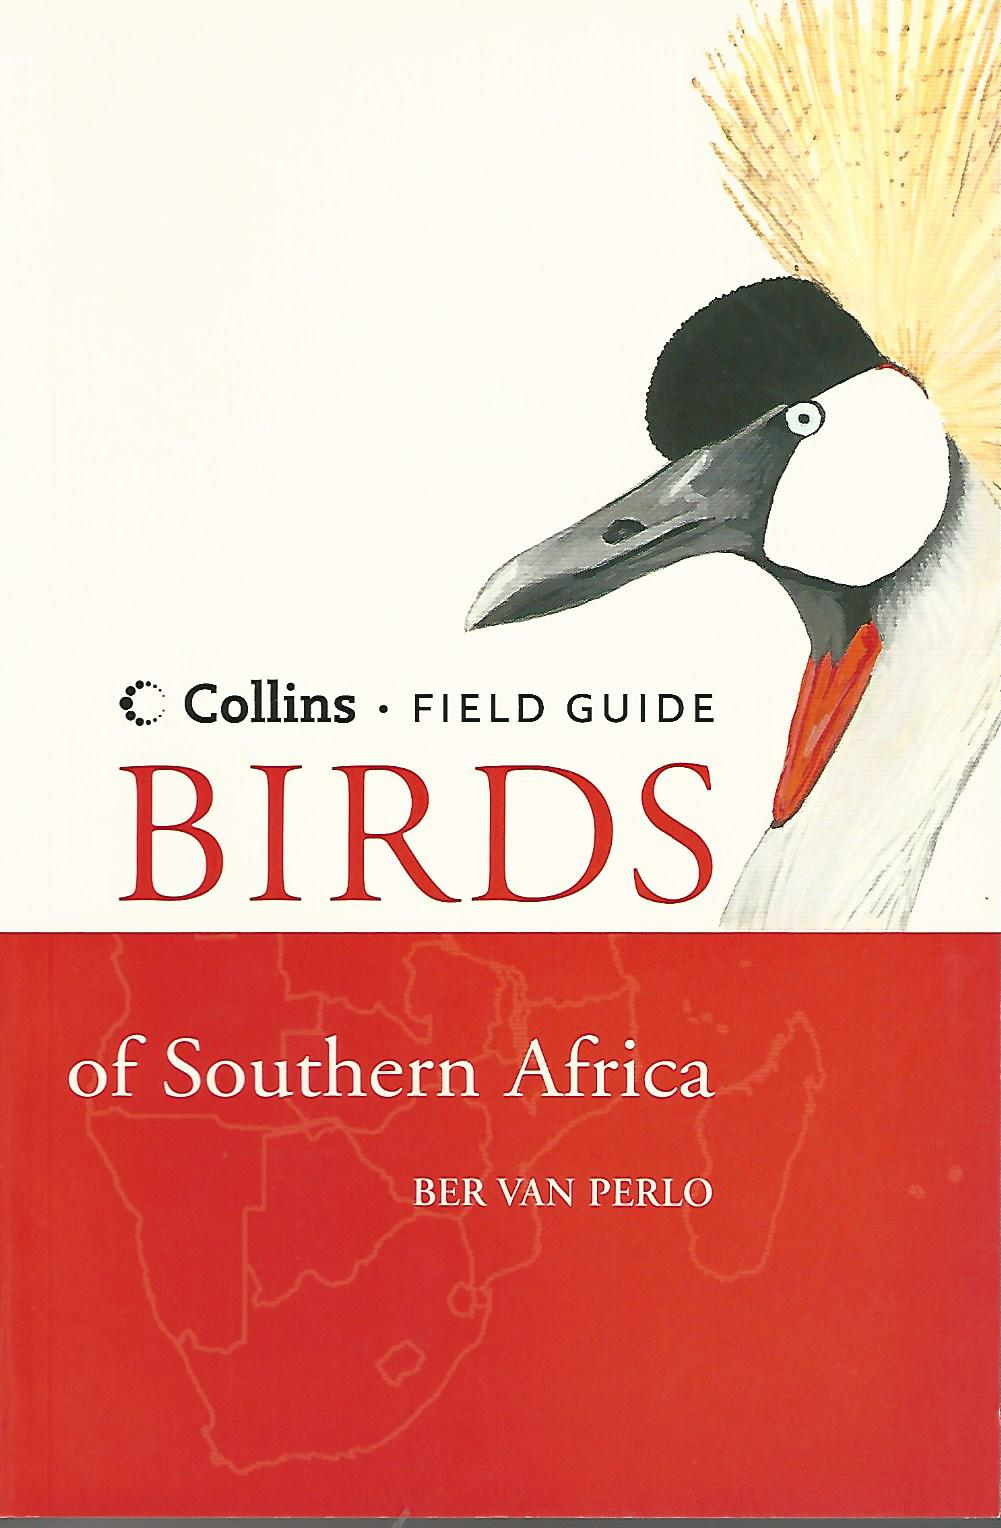 Image for Birds of Southern Africa (Collins Field Guide).